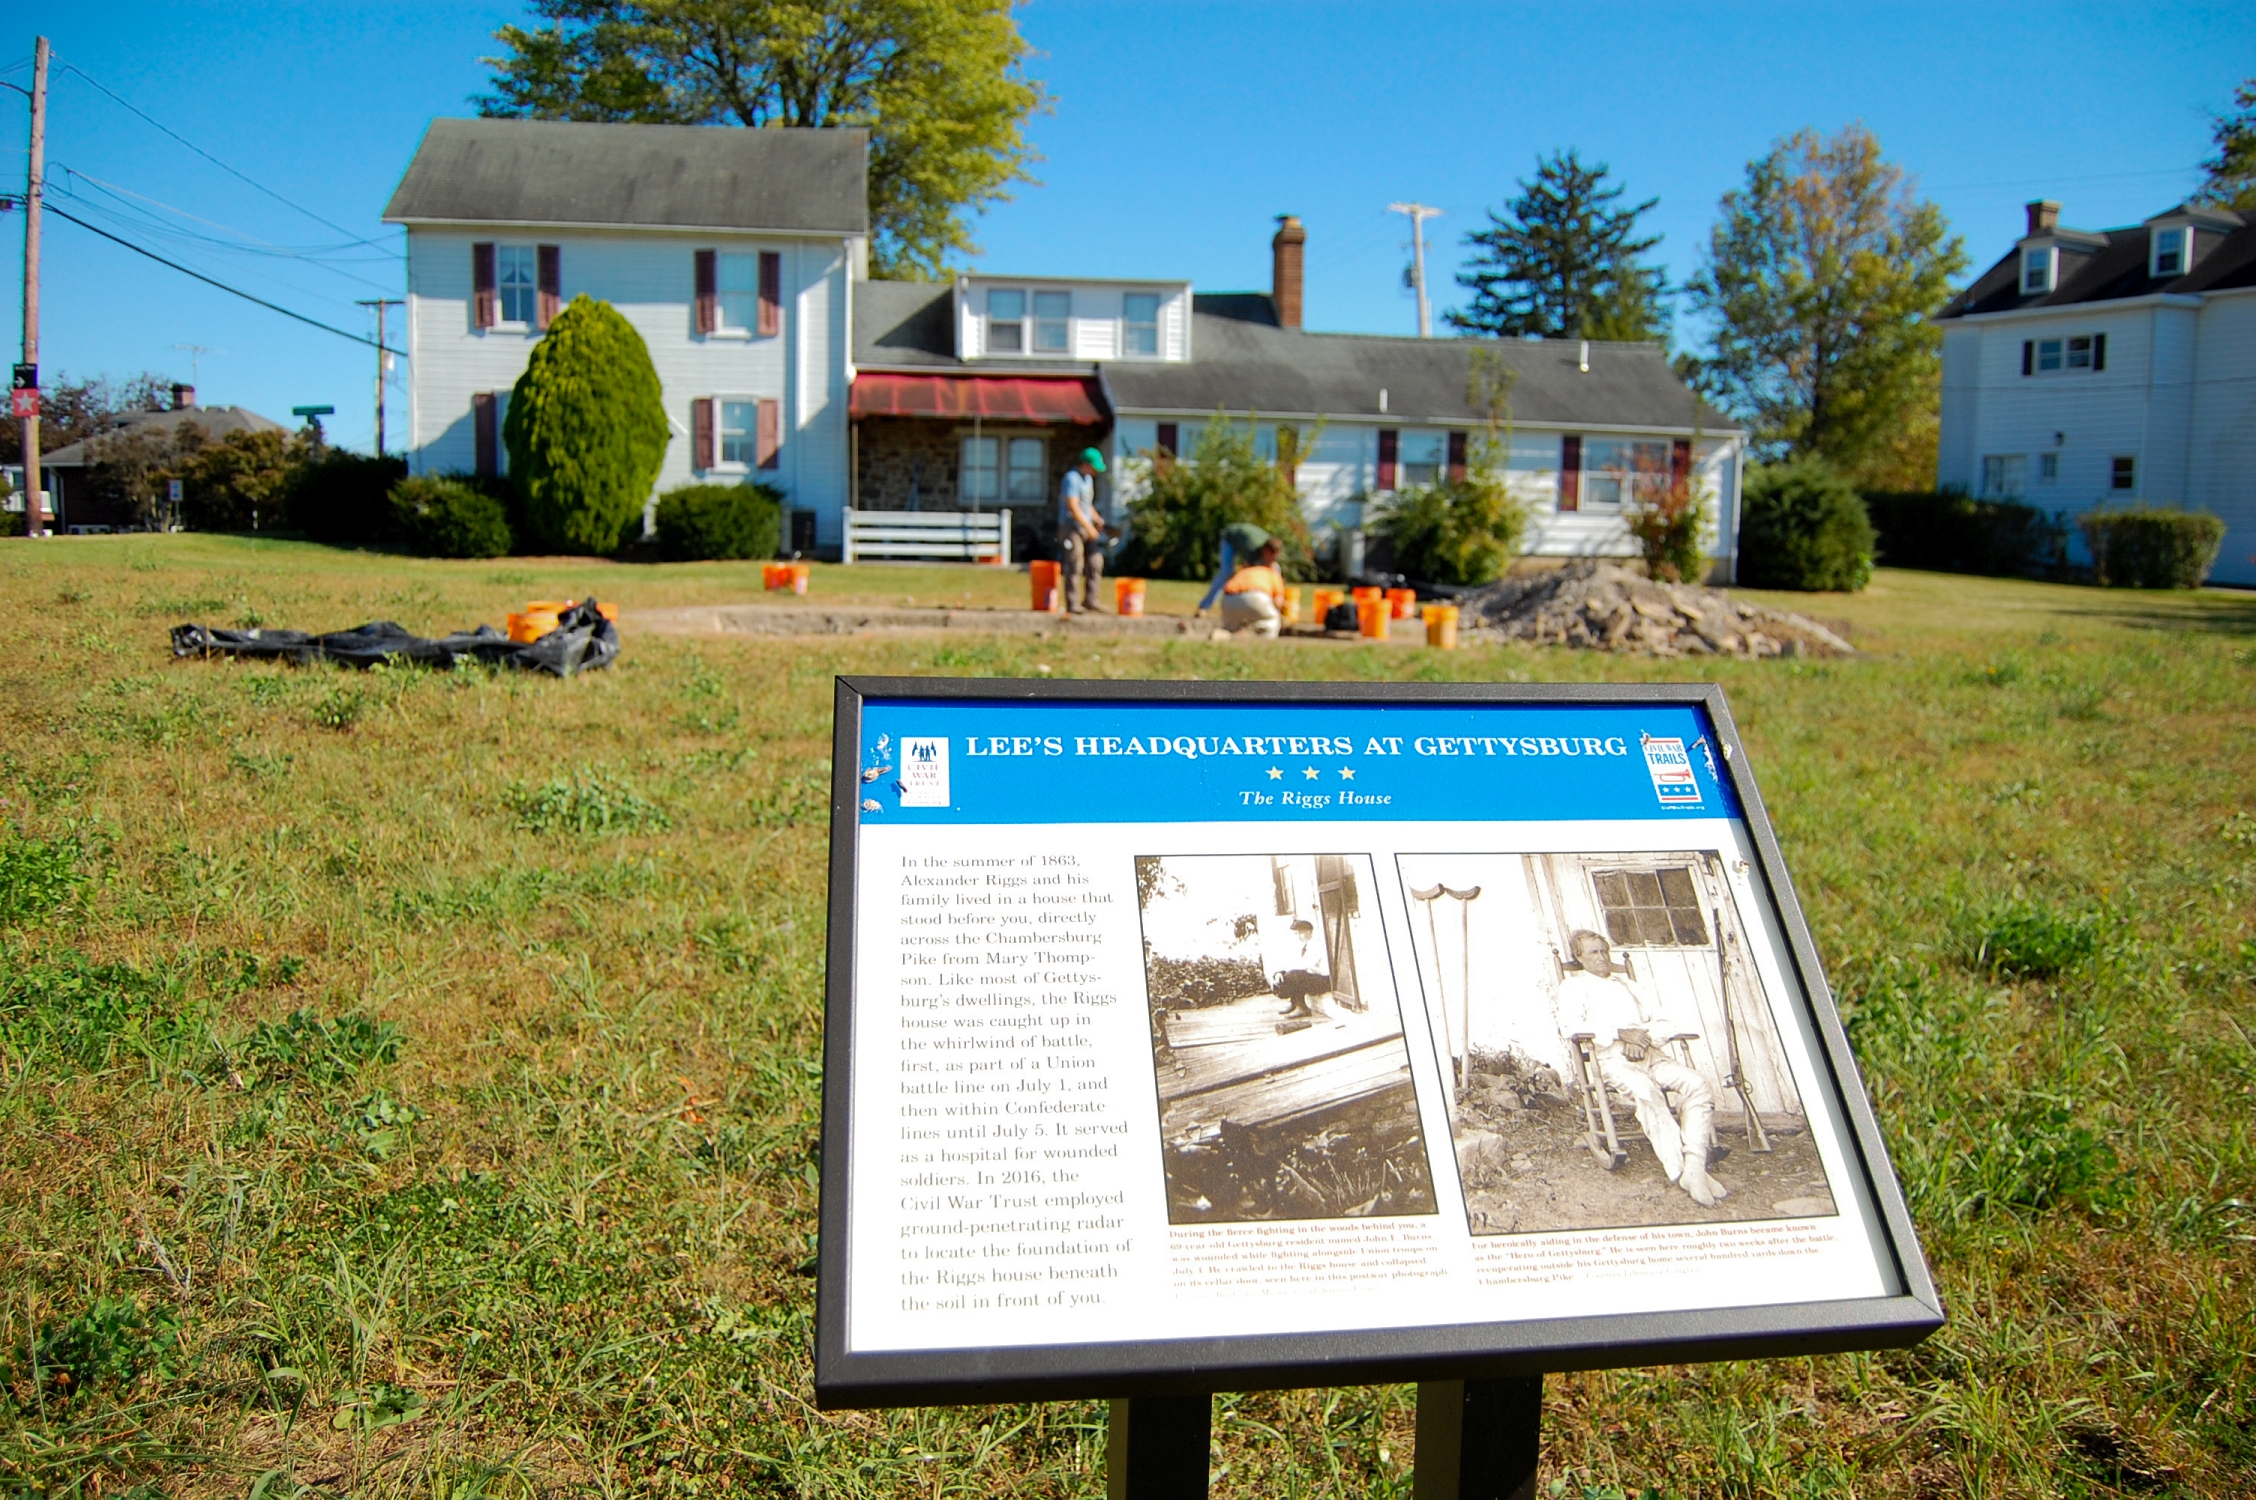 The archaeological dig taking place at the foundation of the Alexander Riggs House is a partnership between the Adams County Historical Society ... & The Alexander Riggs House: John Burns and the Cellar Door ...